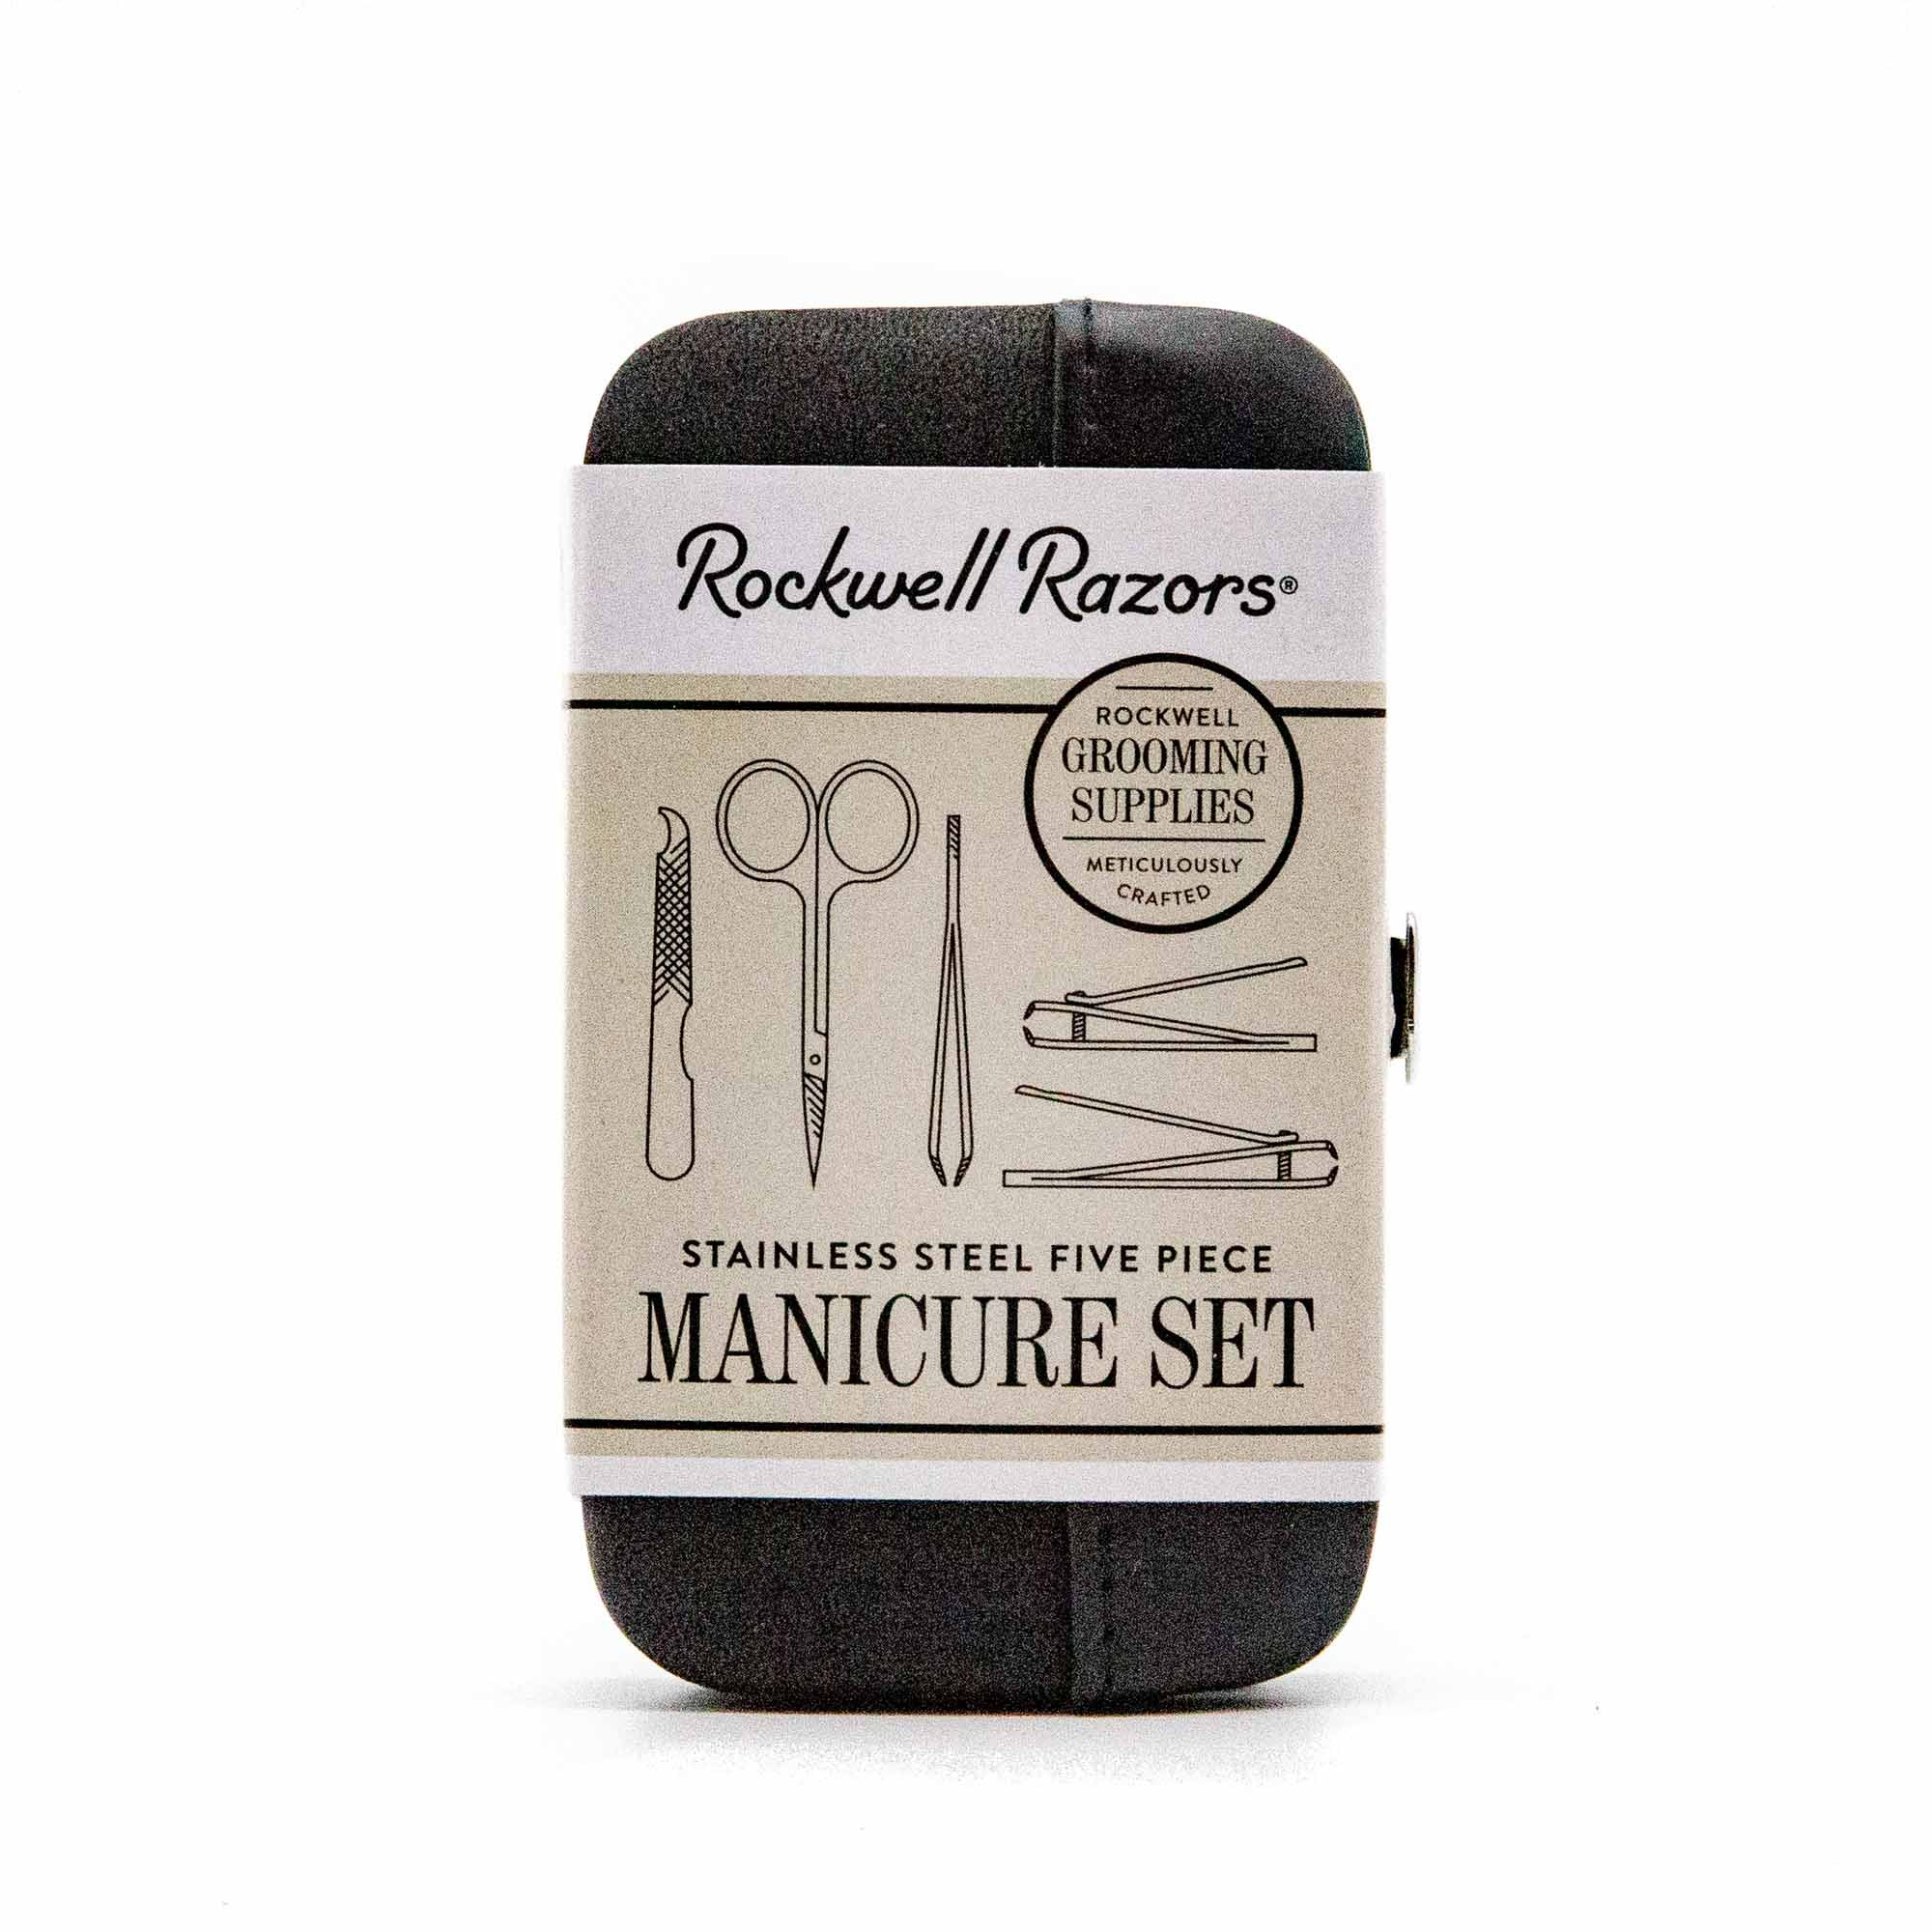 Rockwell Razors Stainless Steel Five Piece Manicure Set - Mortise And Tenon